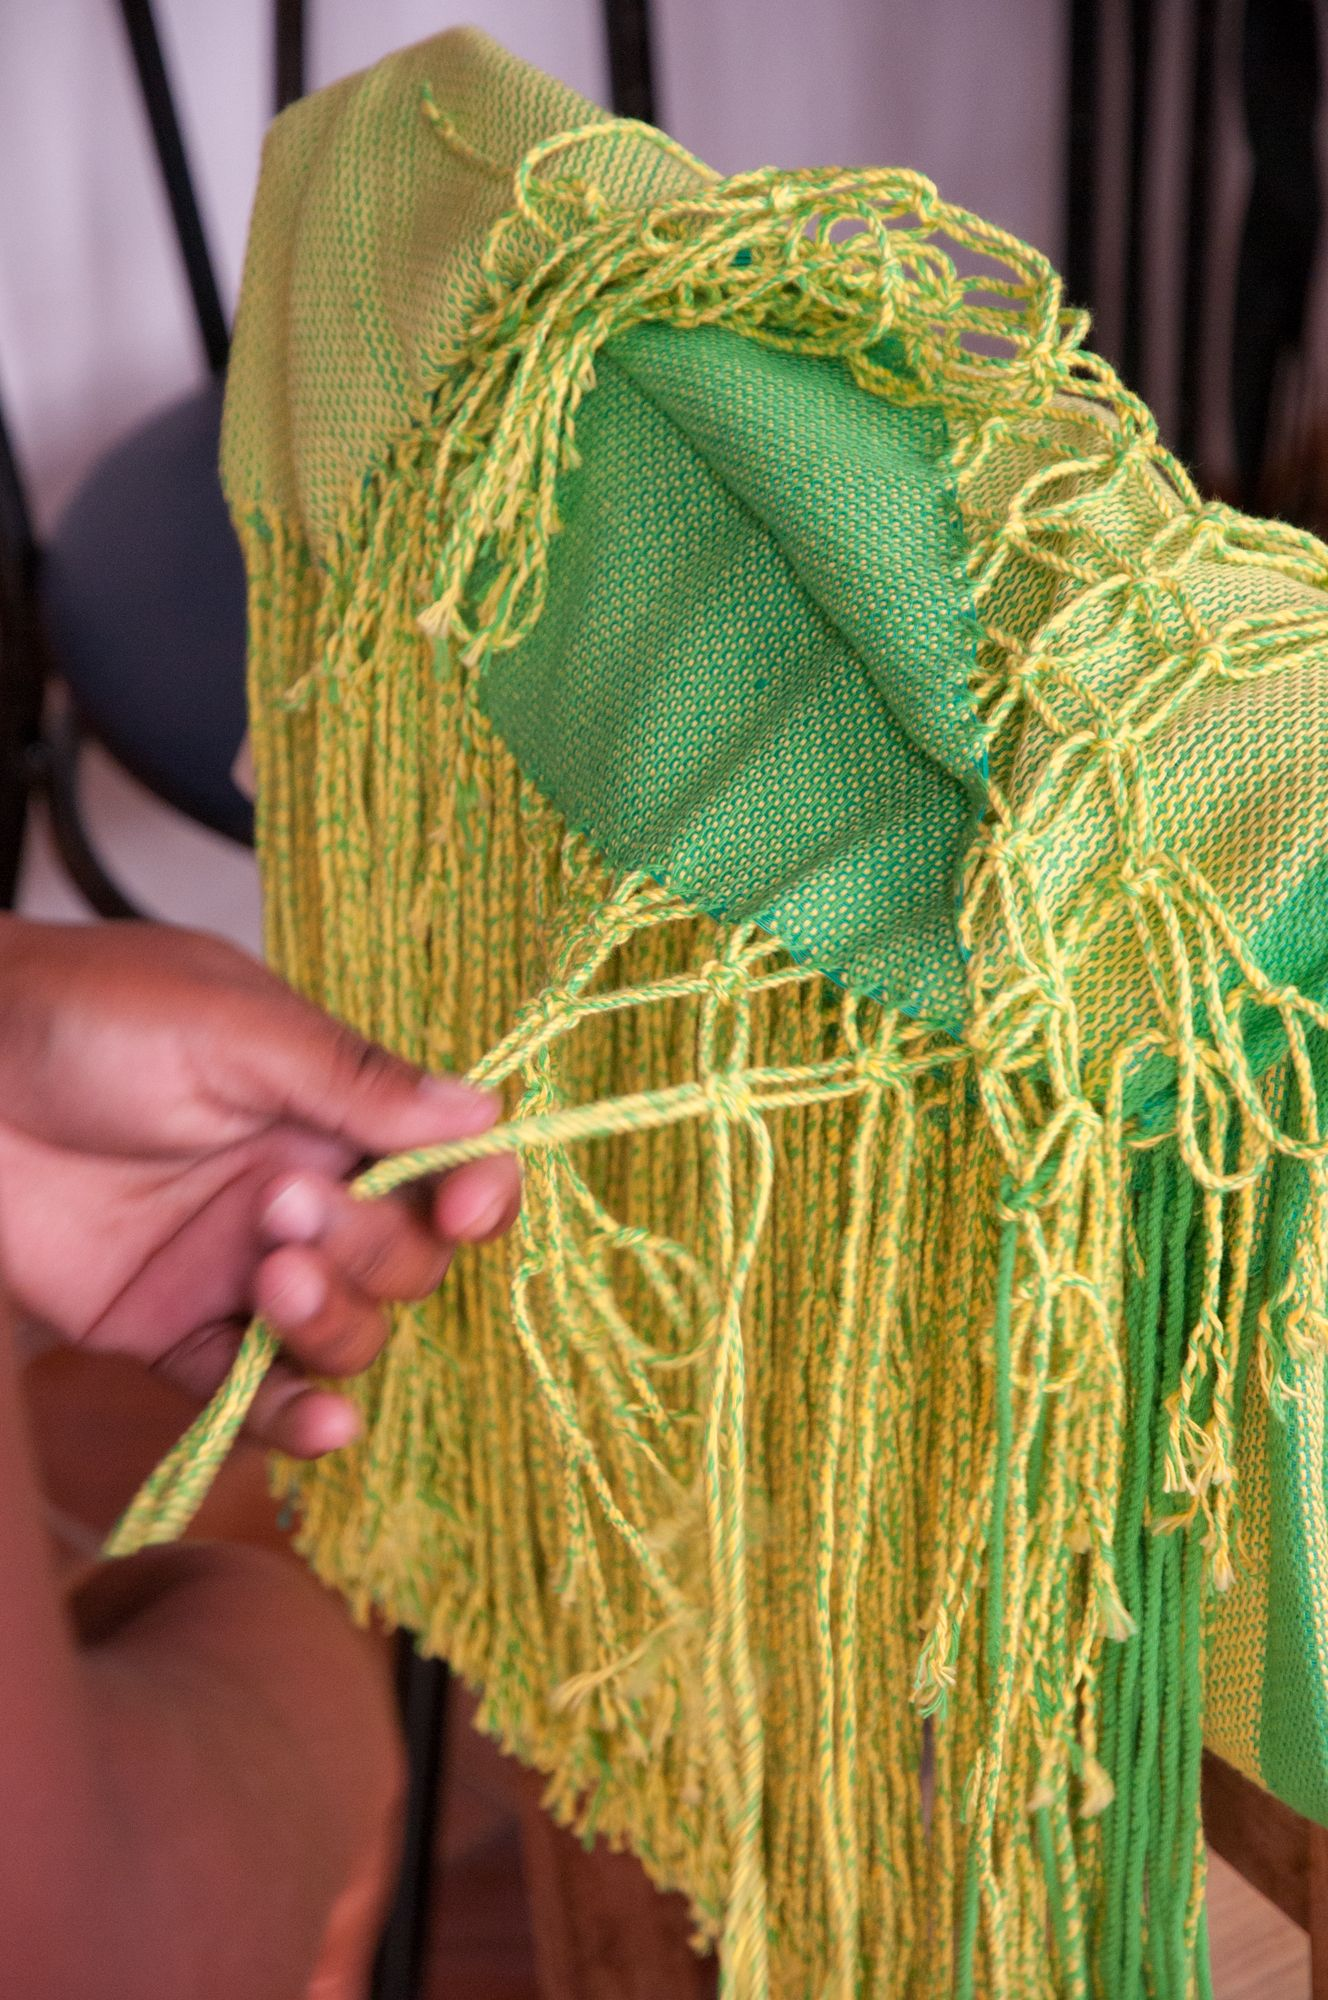 #DitoEscolinha. Creating #hammocks, #macramé, and #fringes at home offers #weavers the possibility to look after their families at the same time